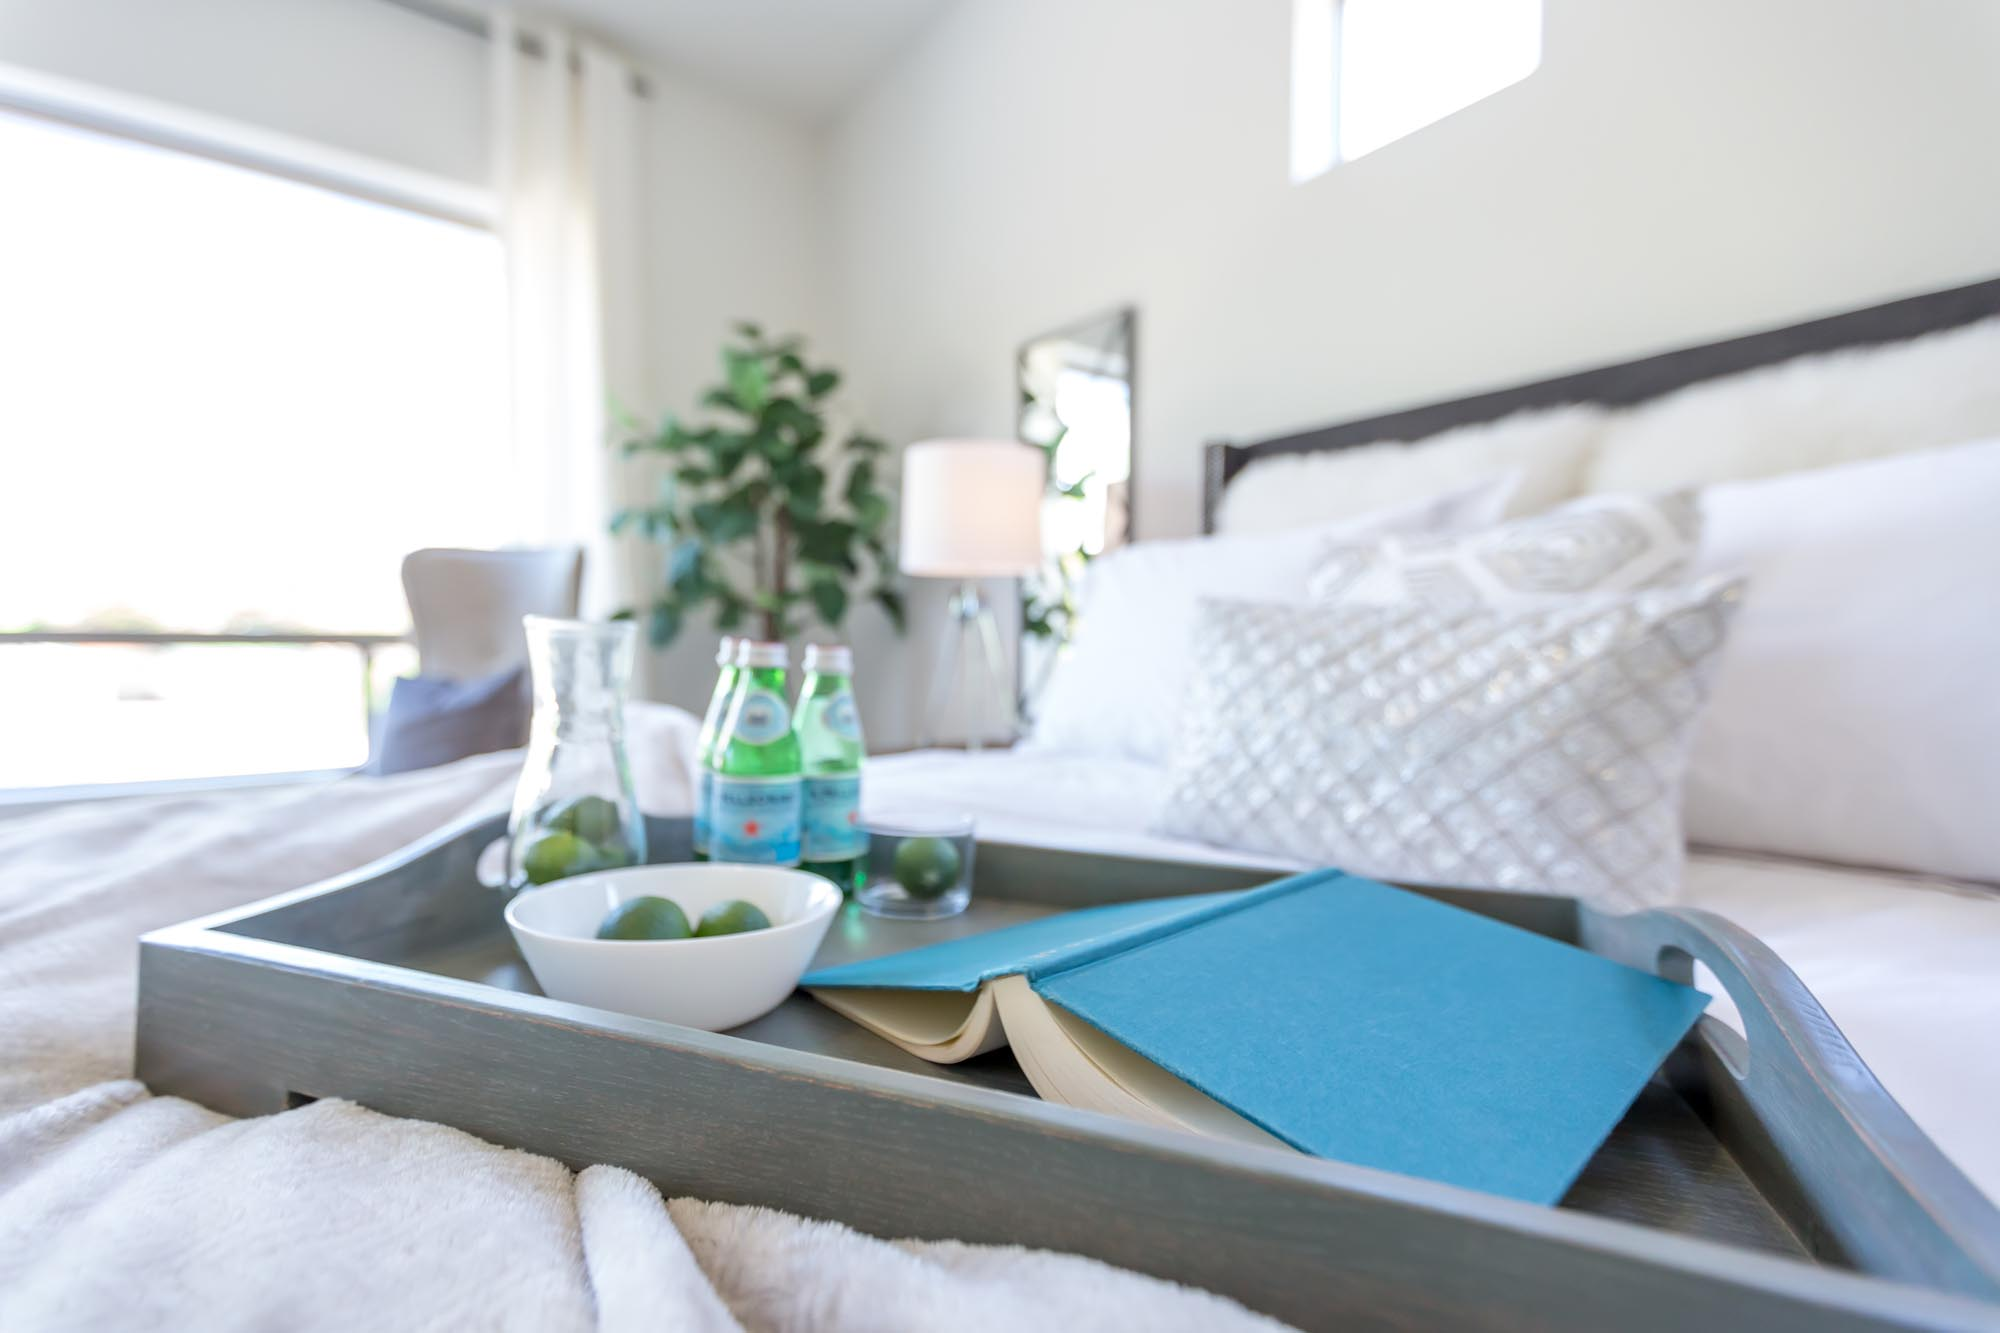 Tray on bed with drinks and book